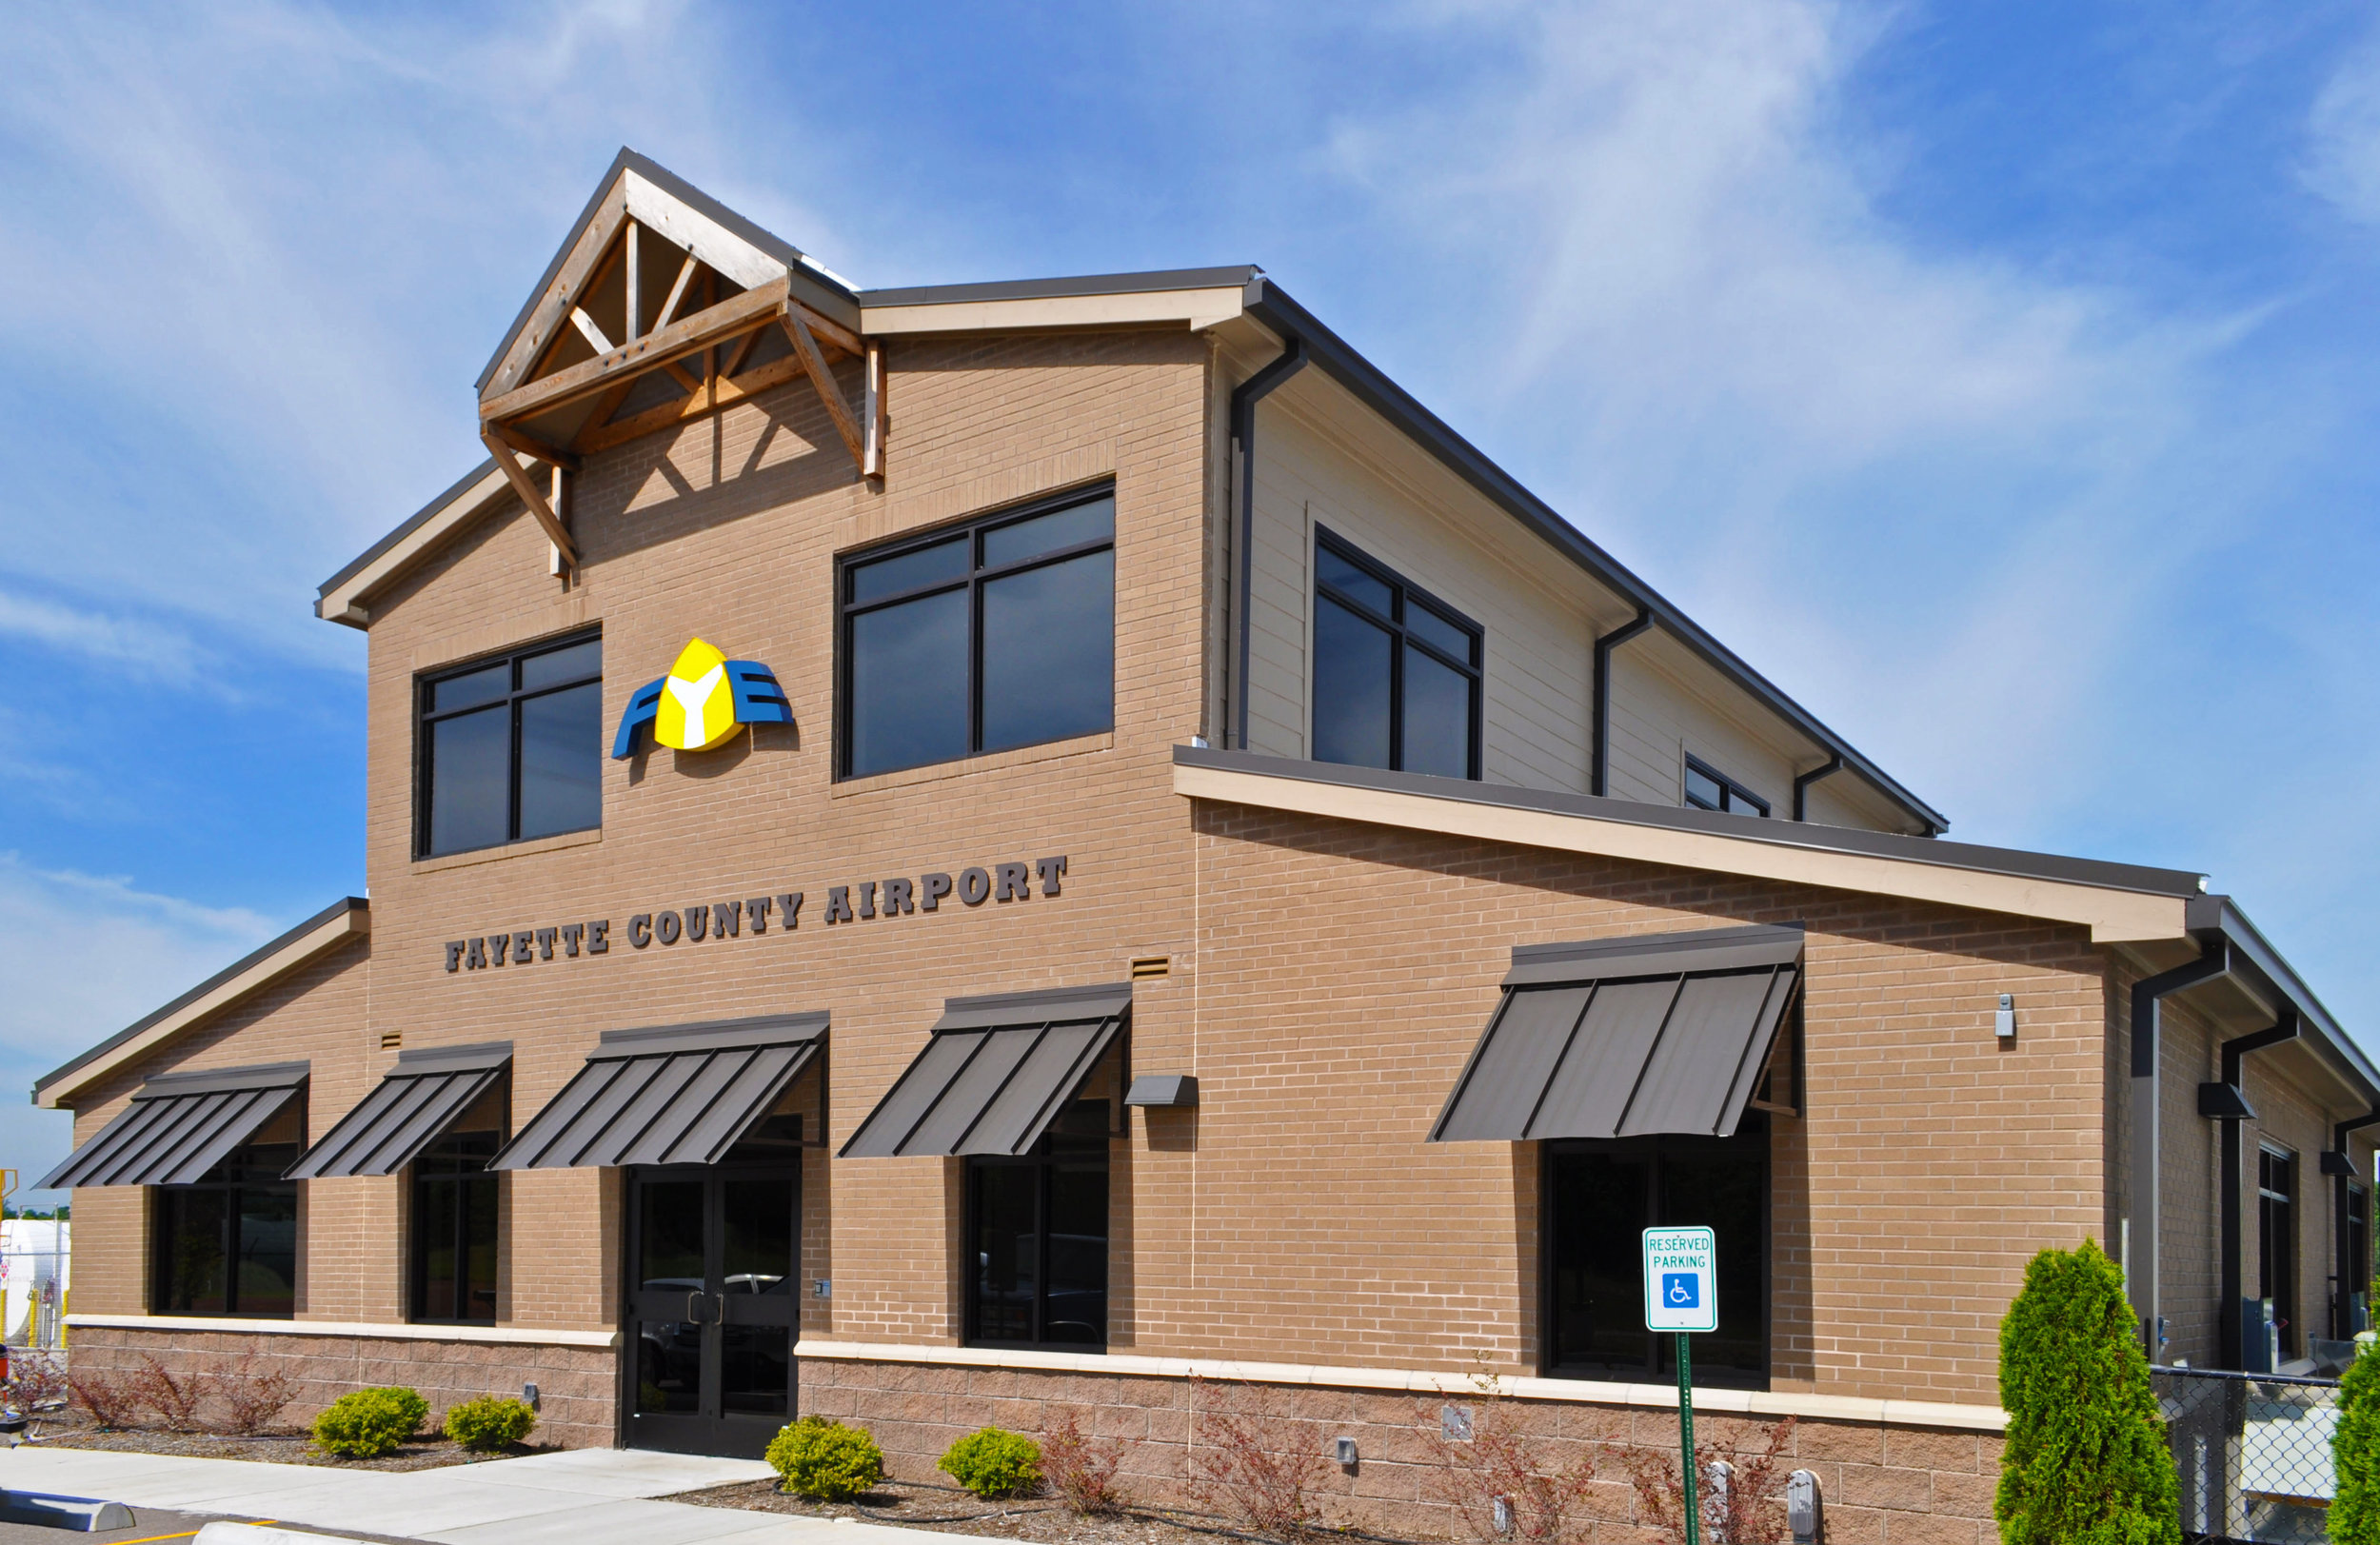 Fayette County Airport Terminal Building